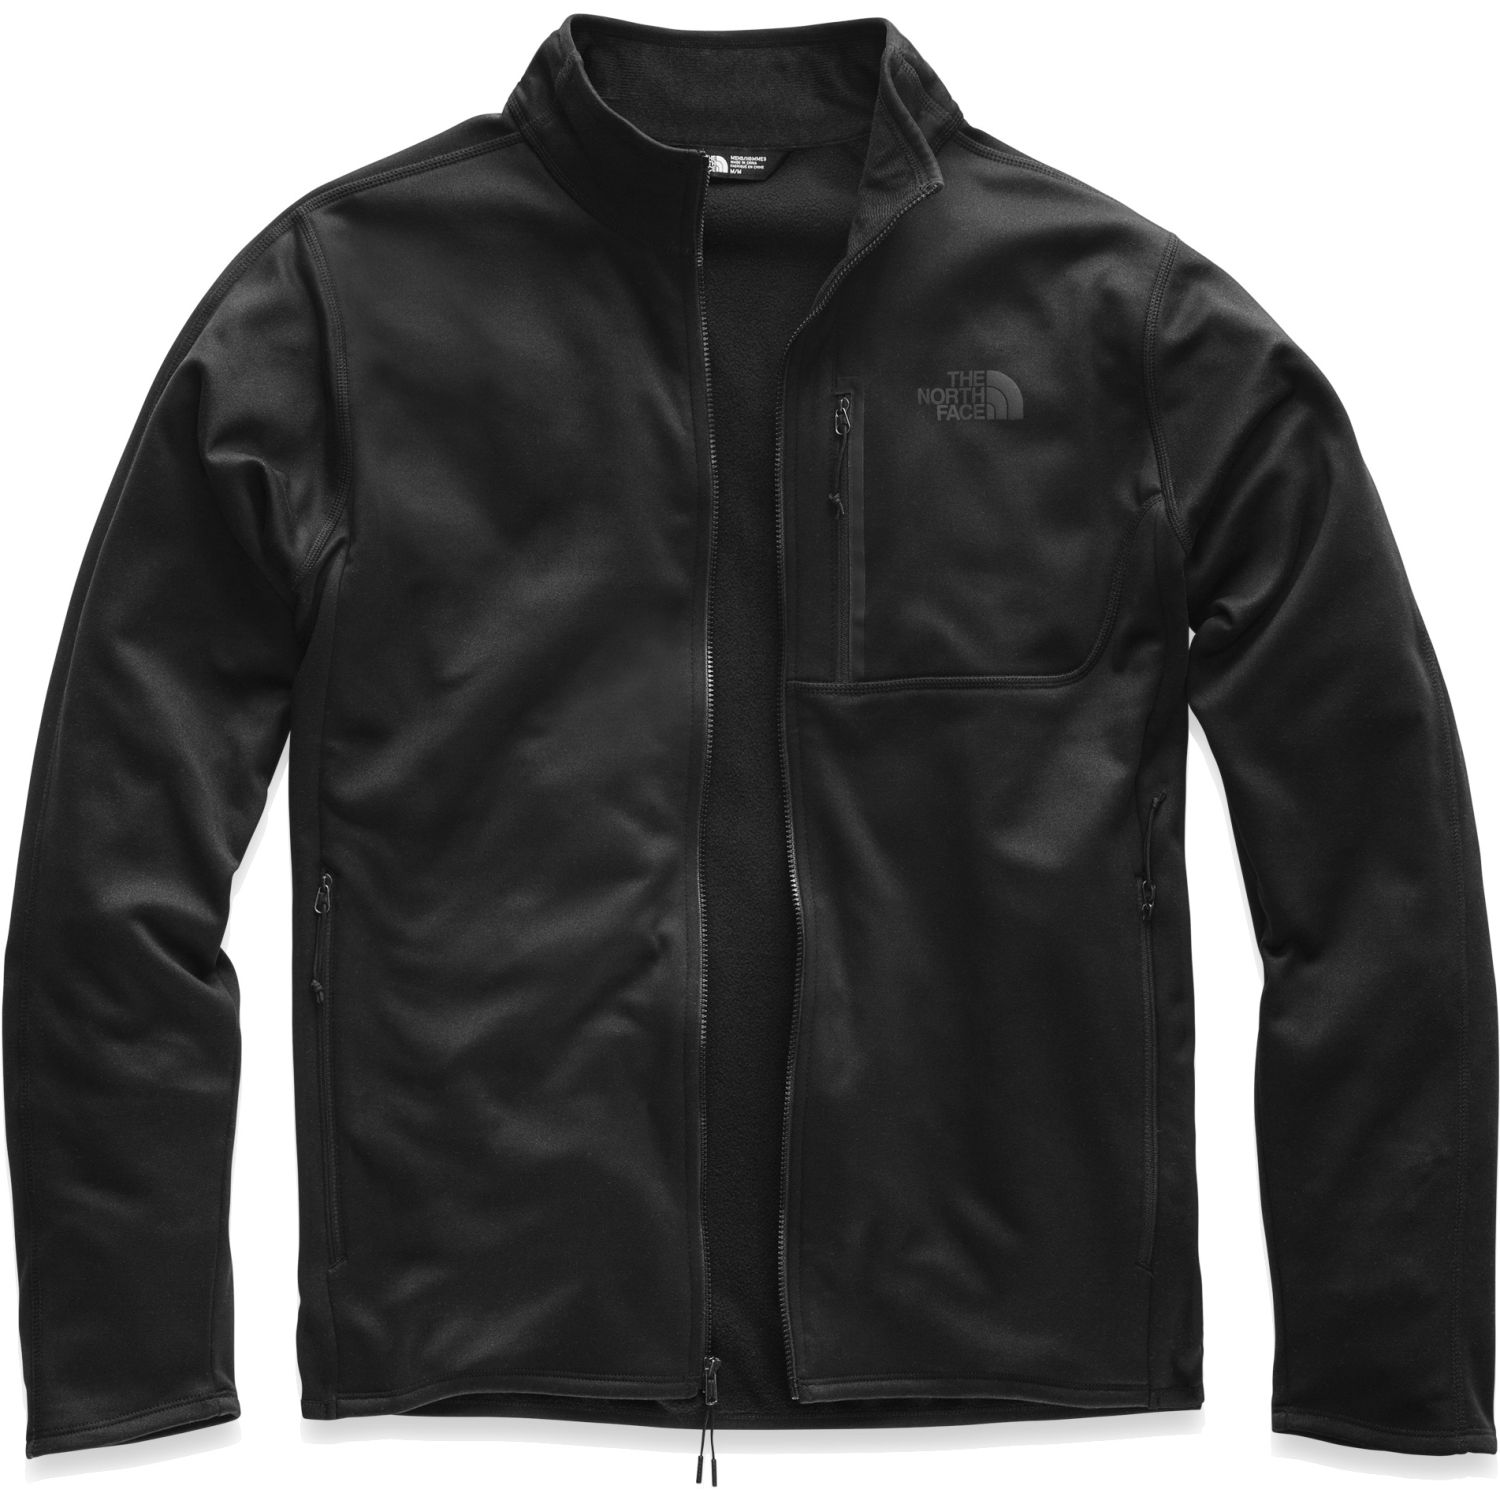 The North Face m canyonlands full zip Negro Pullovers